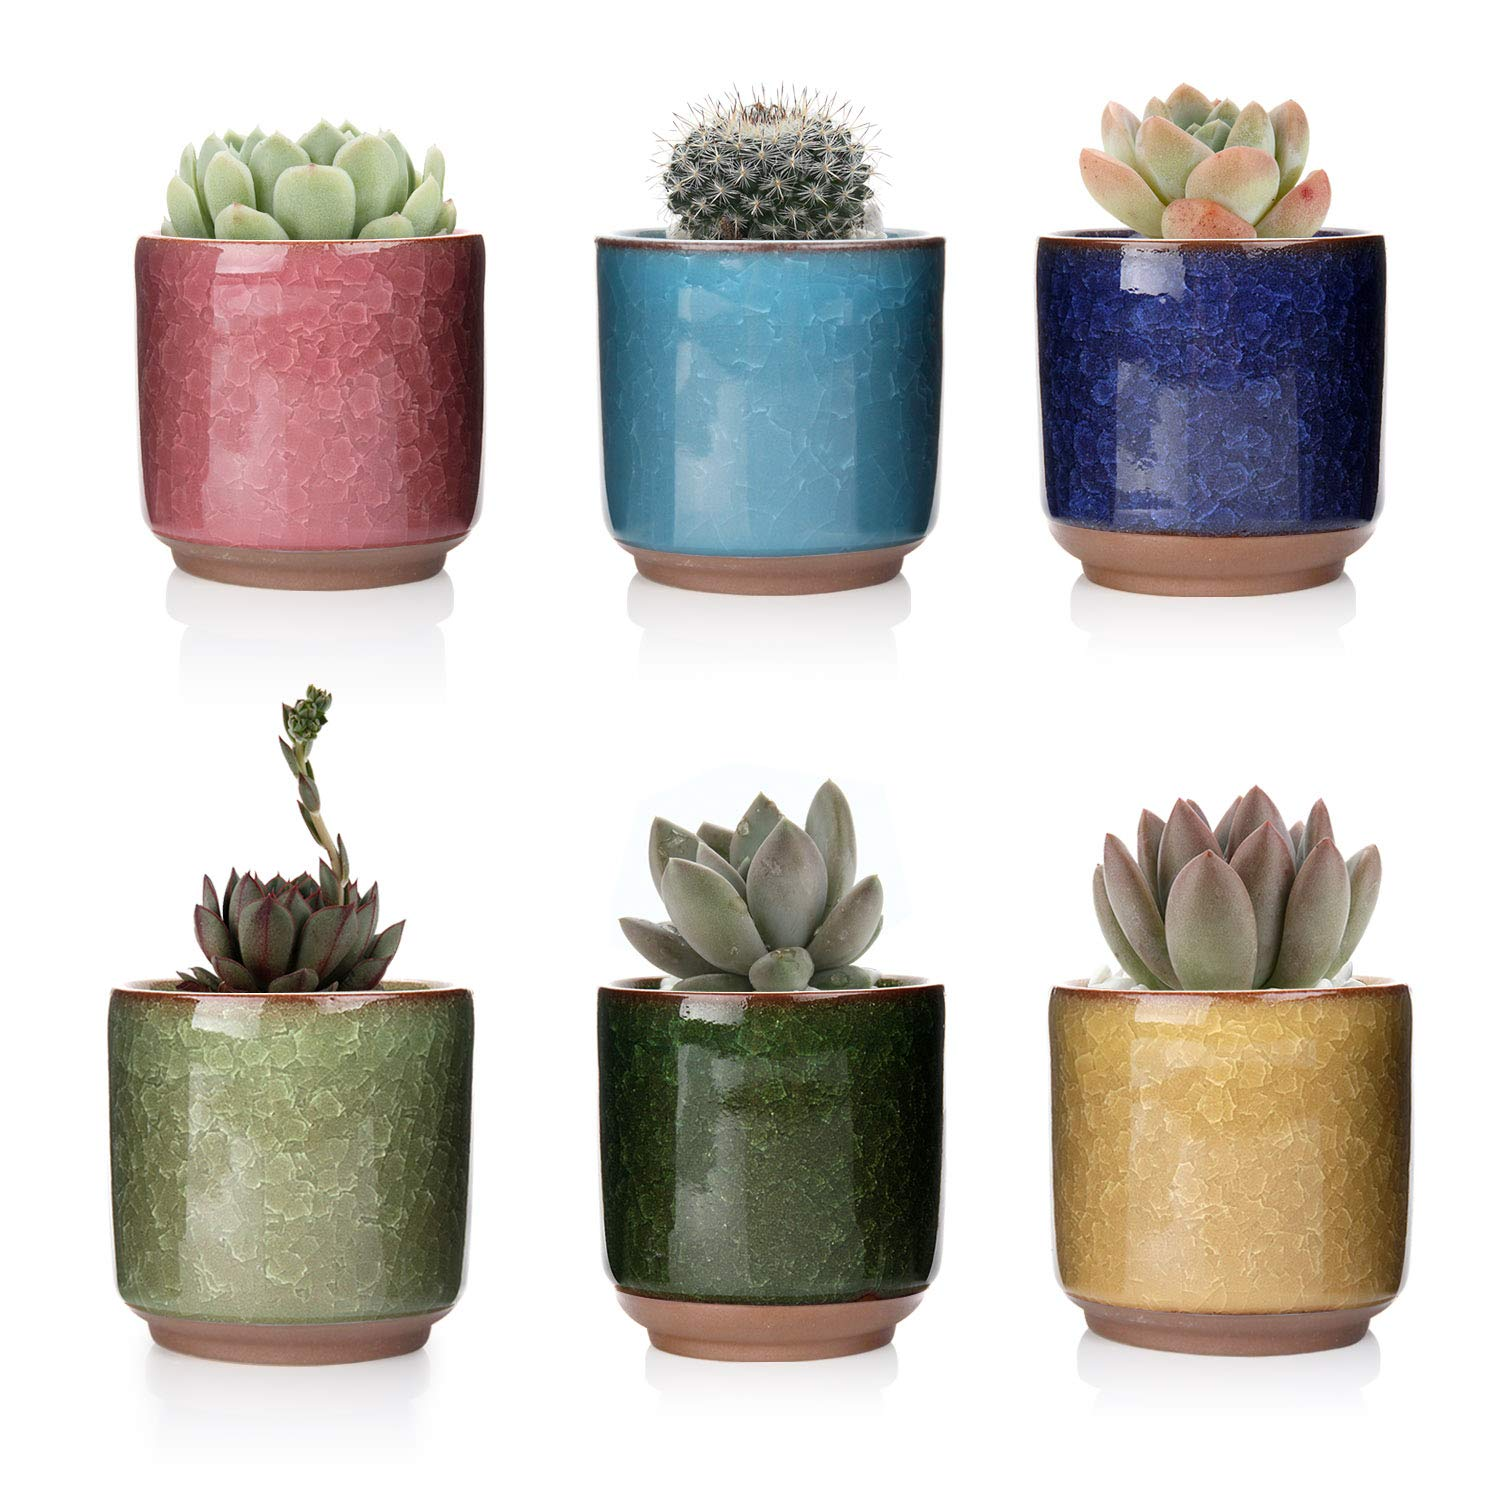 T4U 2.5 Inch Ceramic Ice Crack Zisha Raised Serial Succulent Plant Pot/Cactus Plant Pot Flower Pot/Container/Planter Full Colors Package 1 Pack of 6 by T4U